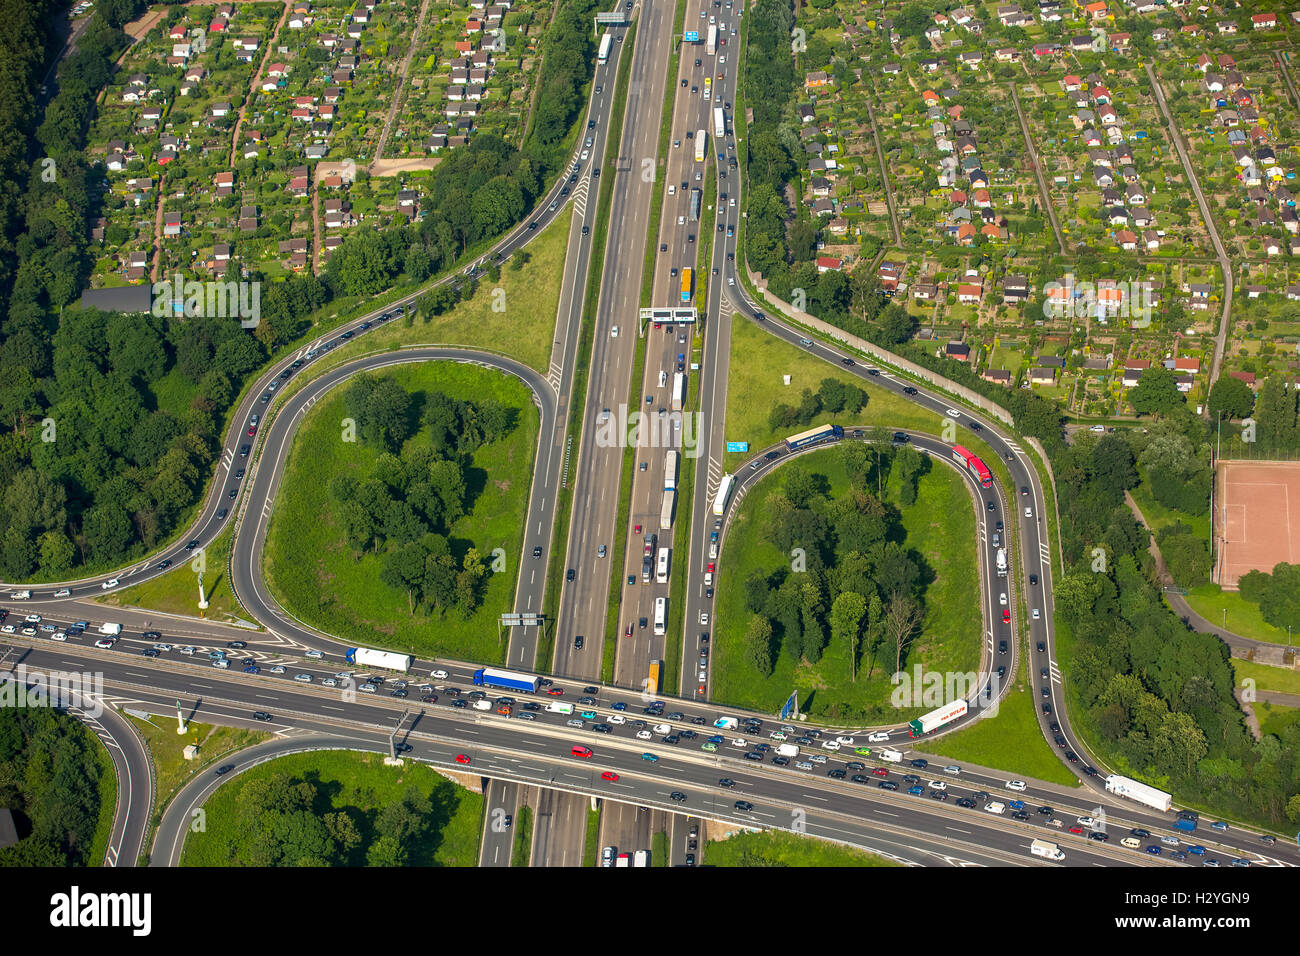 Aerial view, traffic congestion, A59 and A40 motorway, Autobahn, Duisburg, Ruhr District, North Rhine-Westphalia, - Stock Image